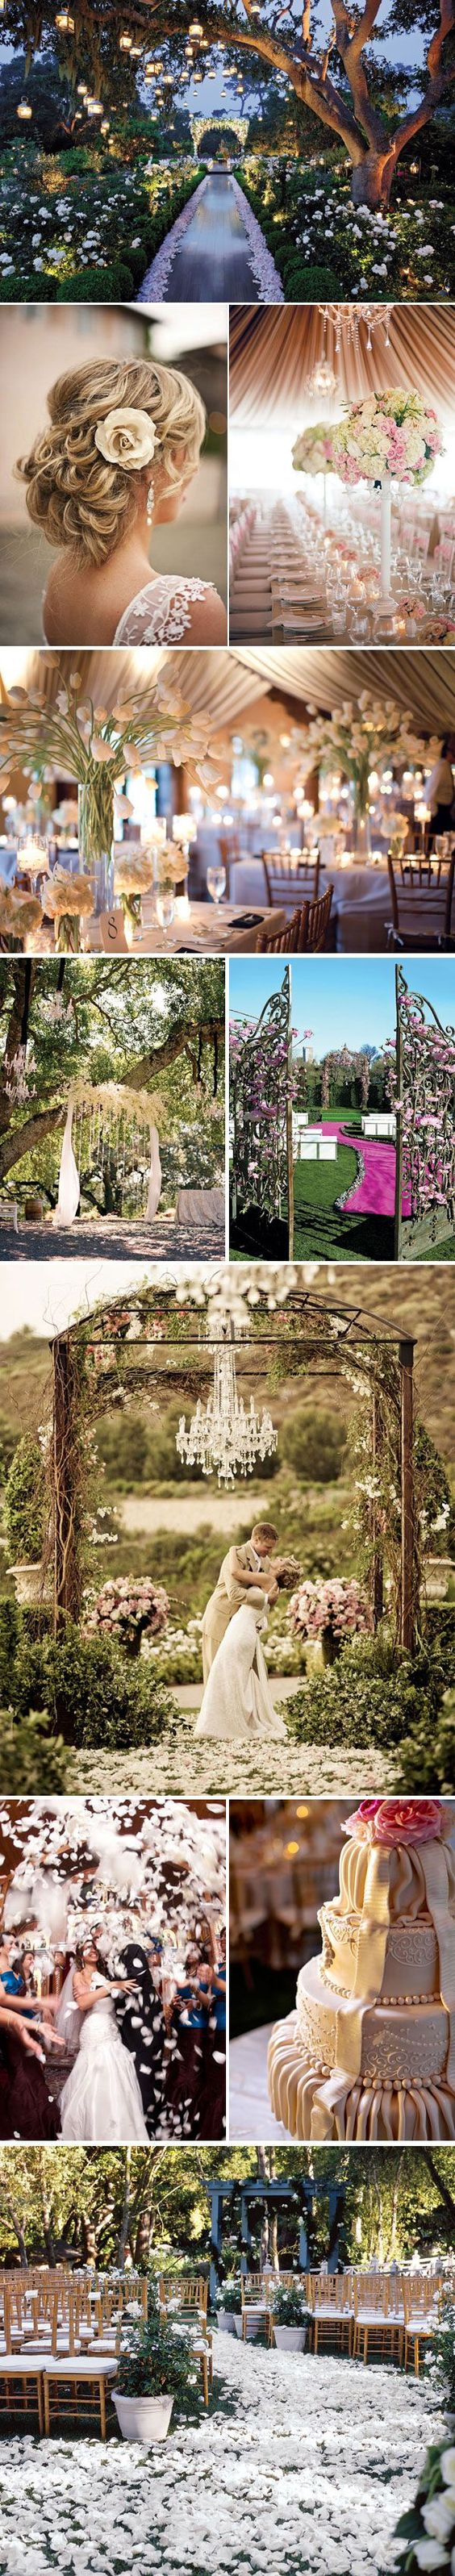 Not planning to get married but if I was going to ...it might look a little like this ... #enchantedforest#glamwedding one day.....: